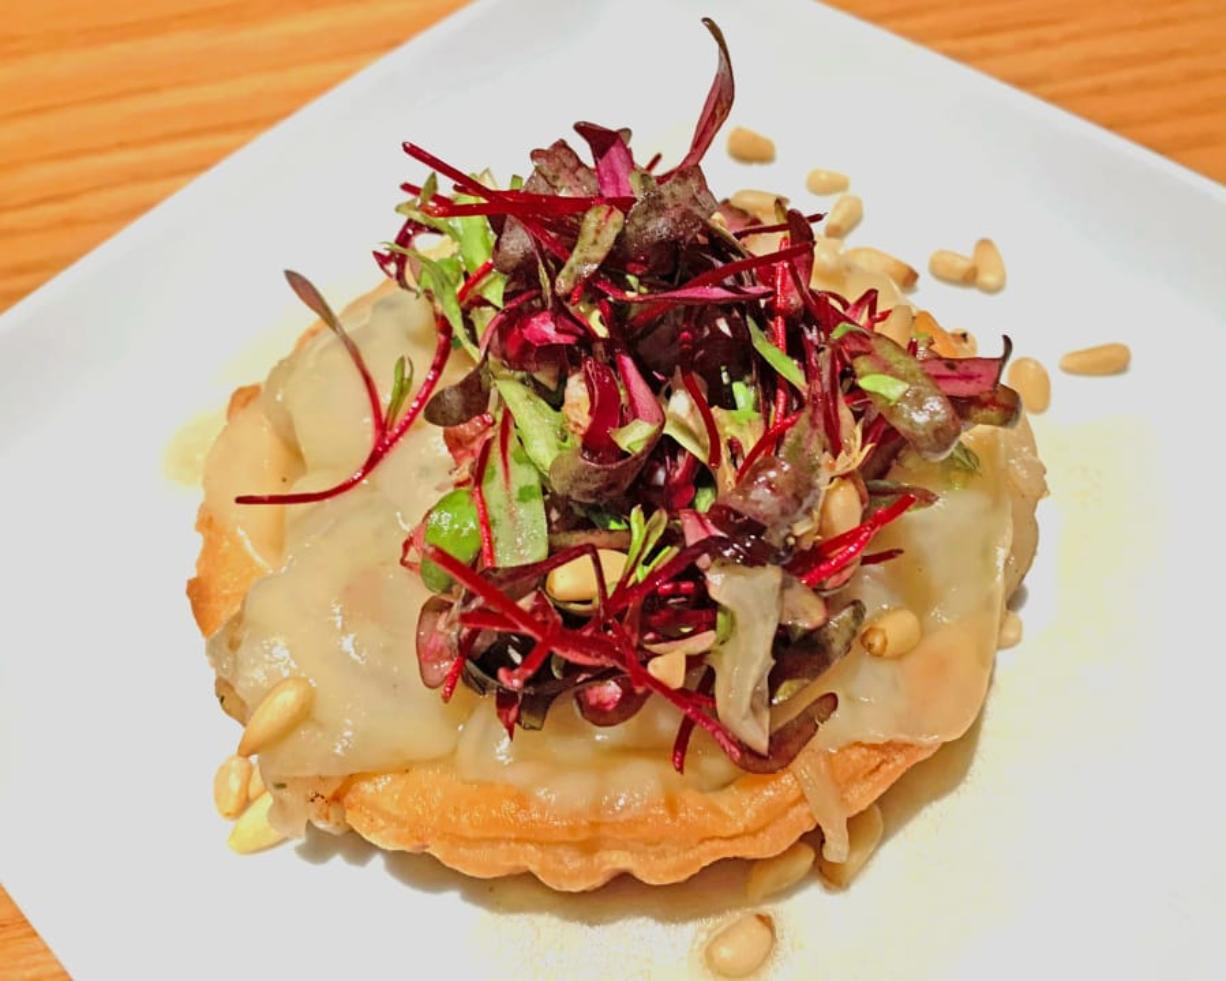 Onion tart at Roots Restaurant & Bar in Camas is topped with Bulls Blood Beet microgreens. (Rick Browne)